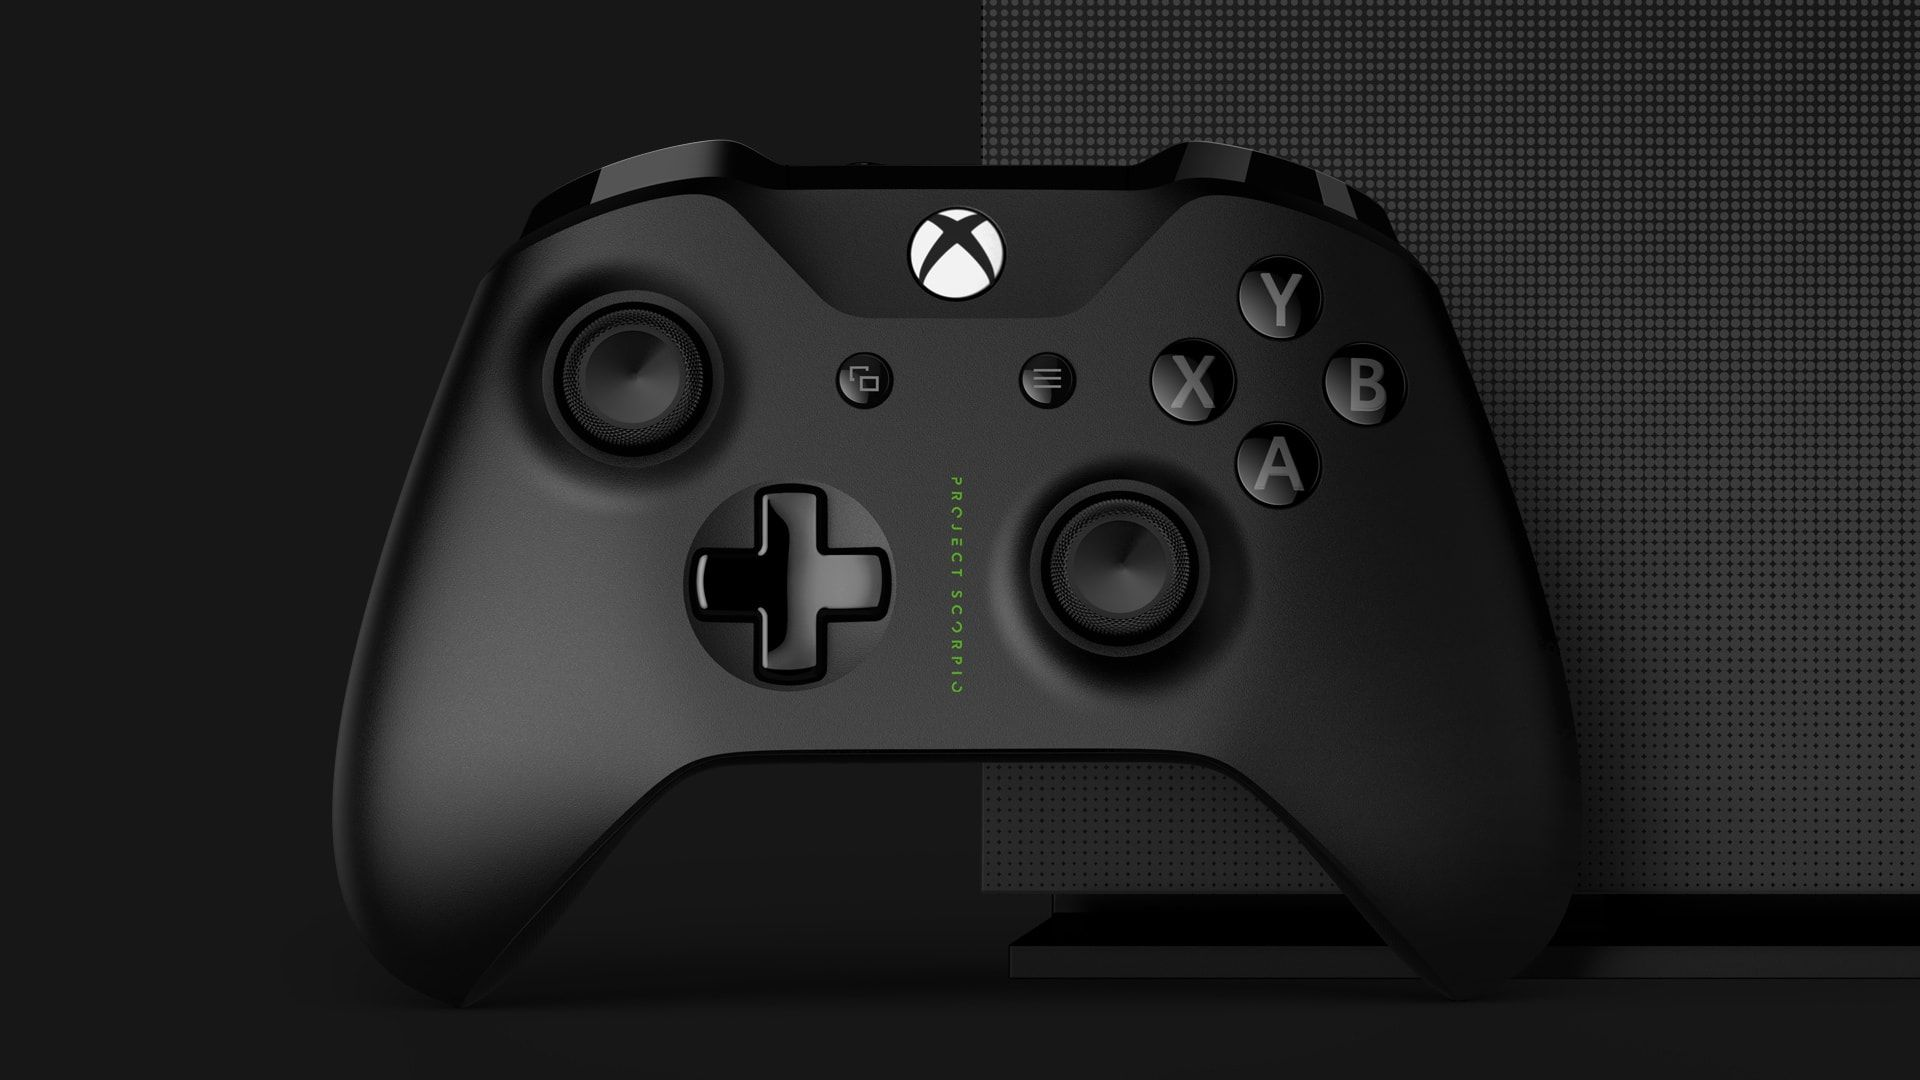 1920x1080 Xbox One X vs PS4 Pro: Which 4K console should you buy right now ...